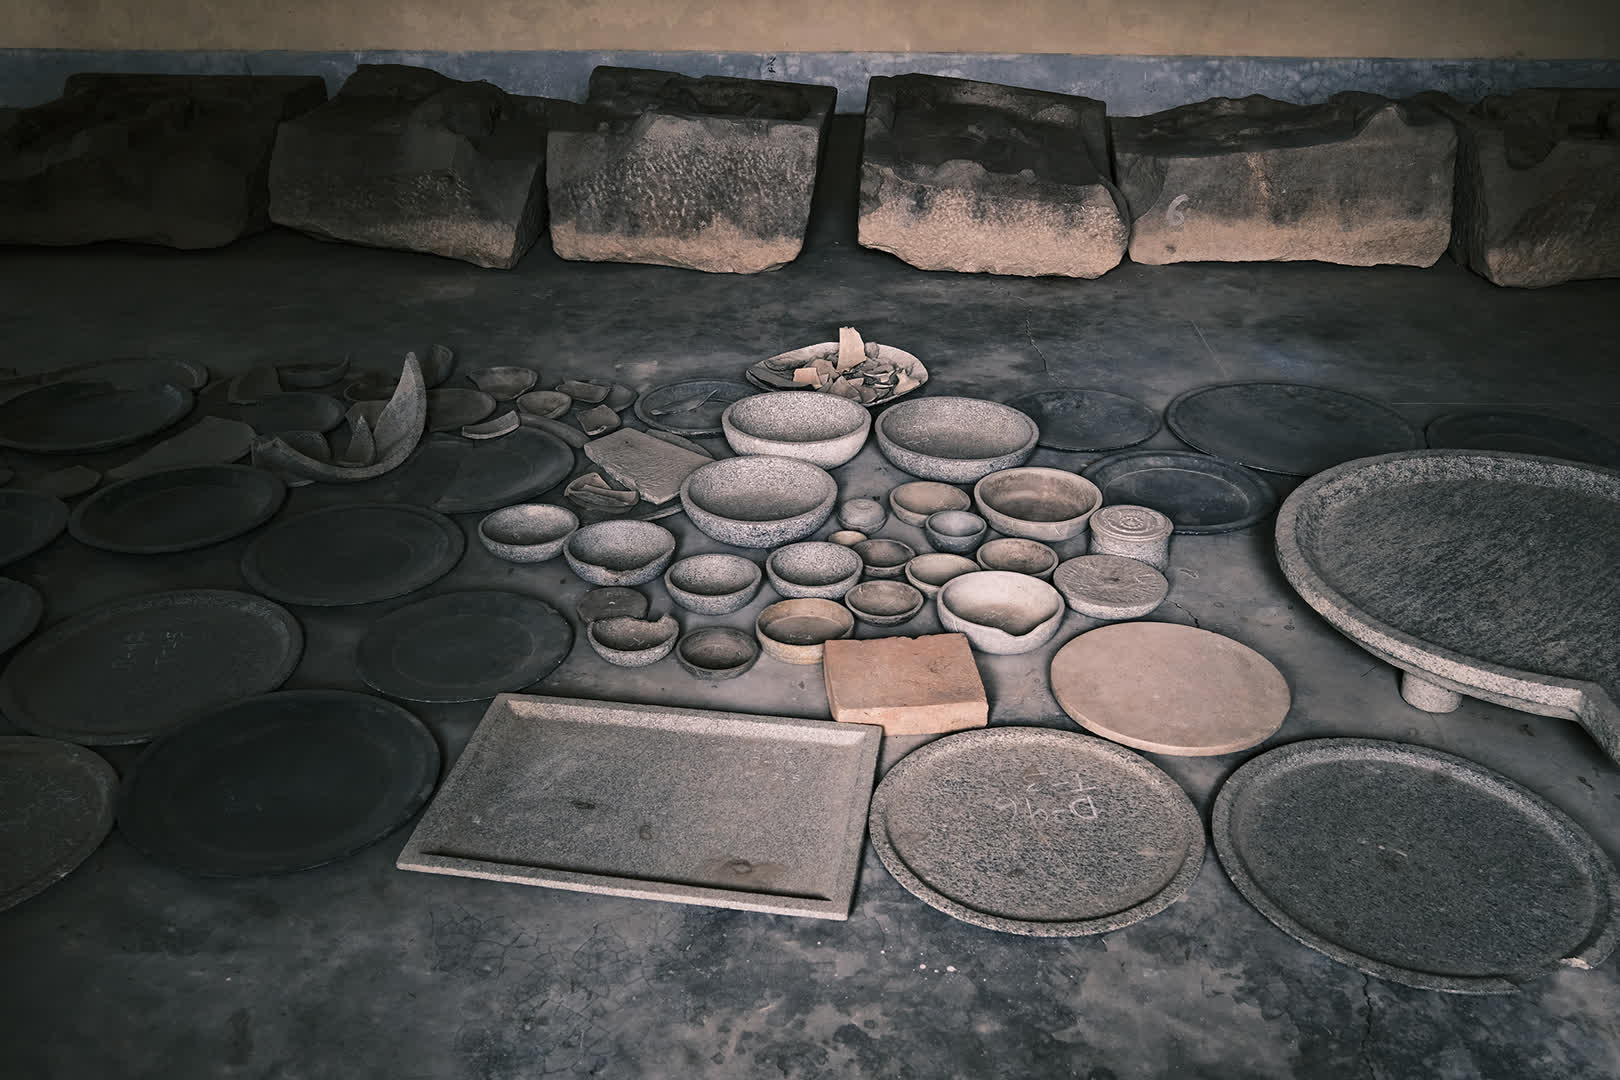 Utensils and sculptures recovered from the excavation